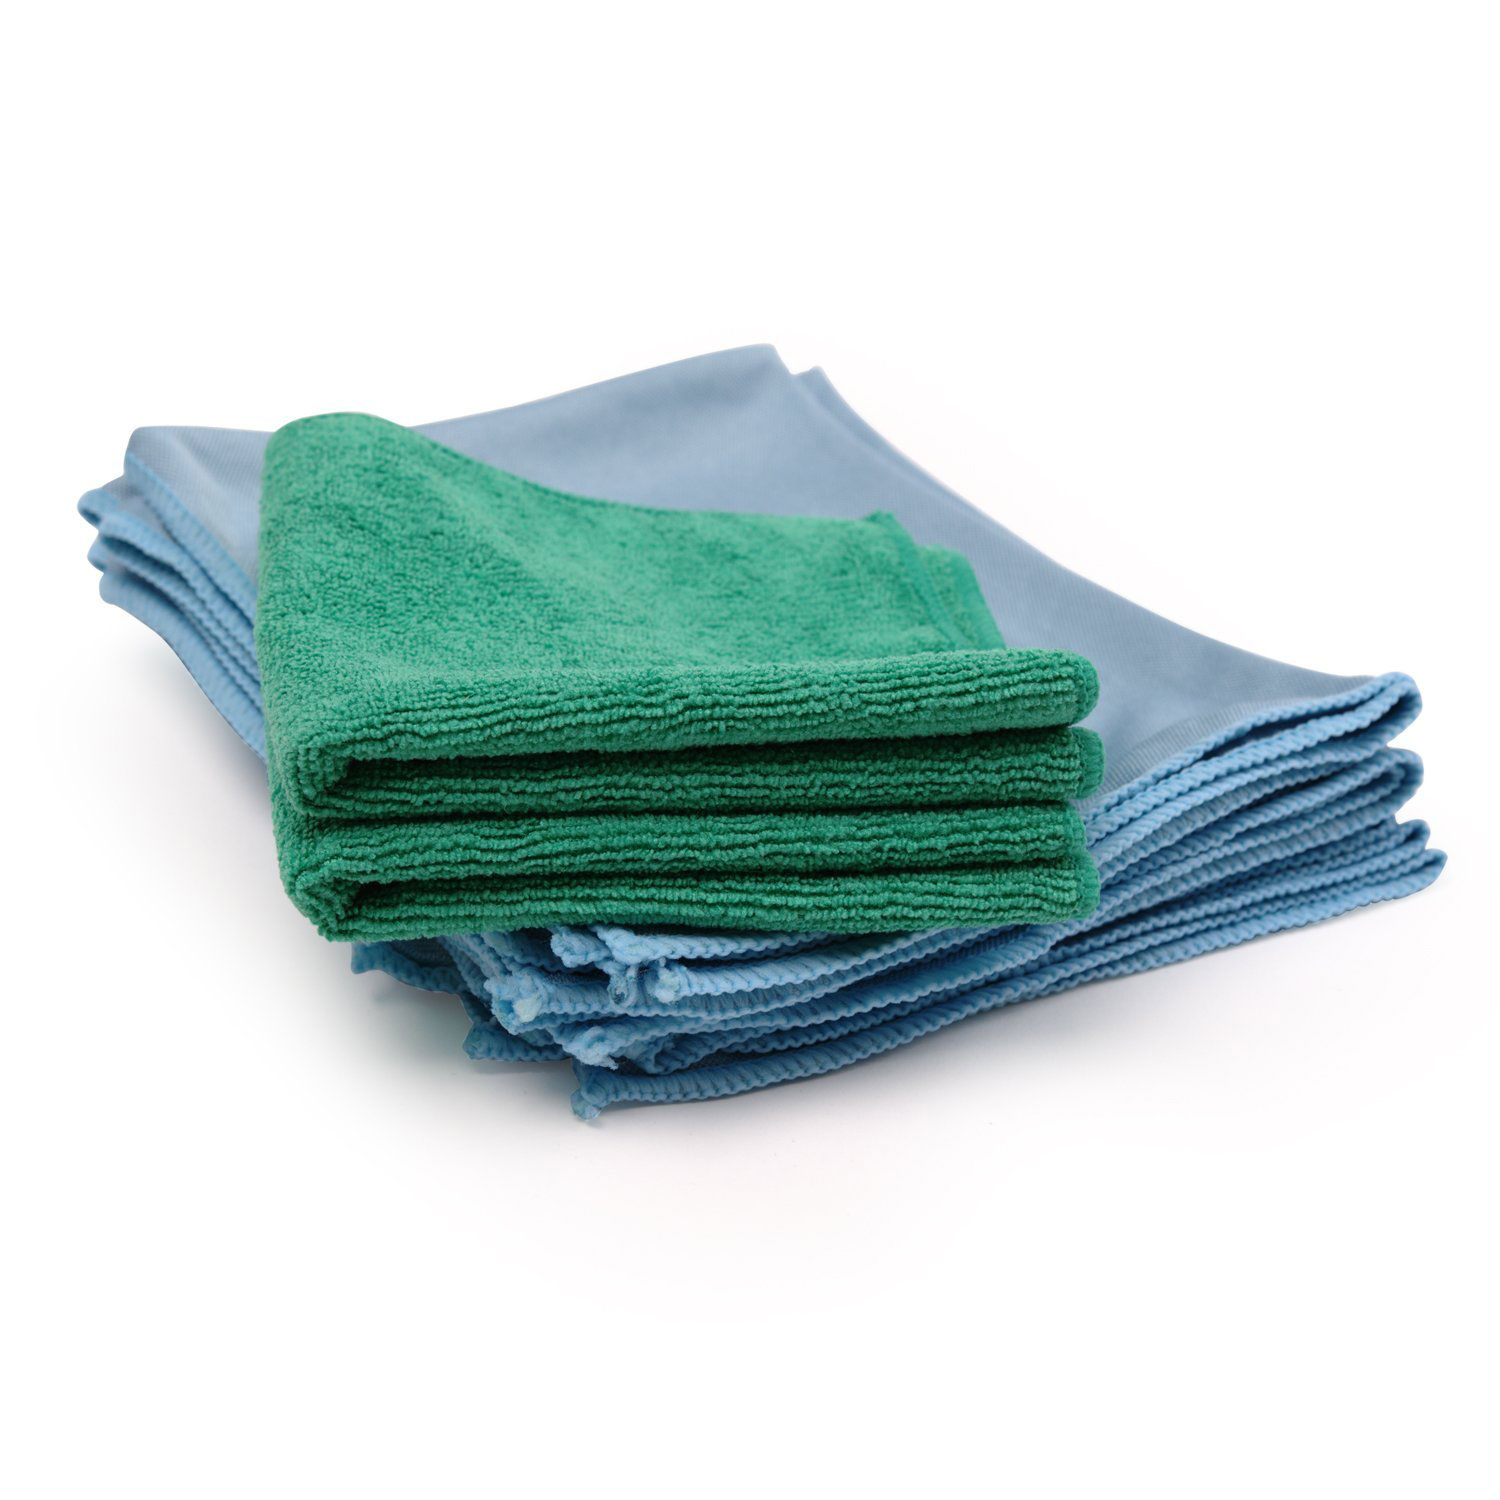 Microfiber Glass Cleaning Cloths 8 Pack